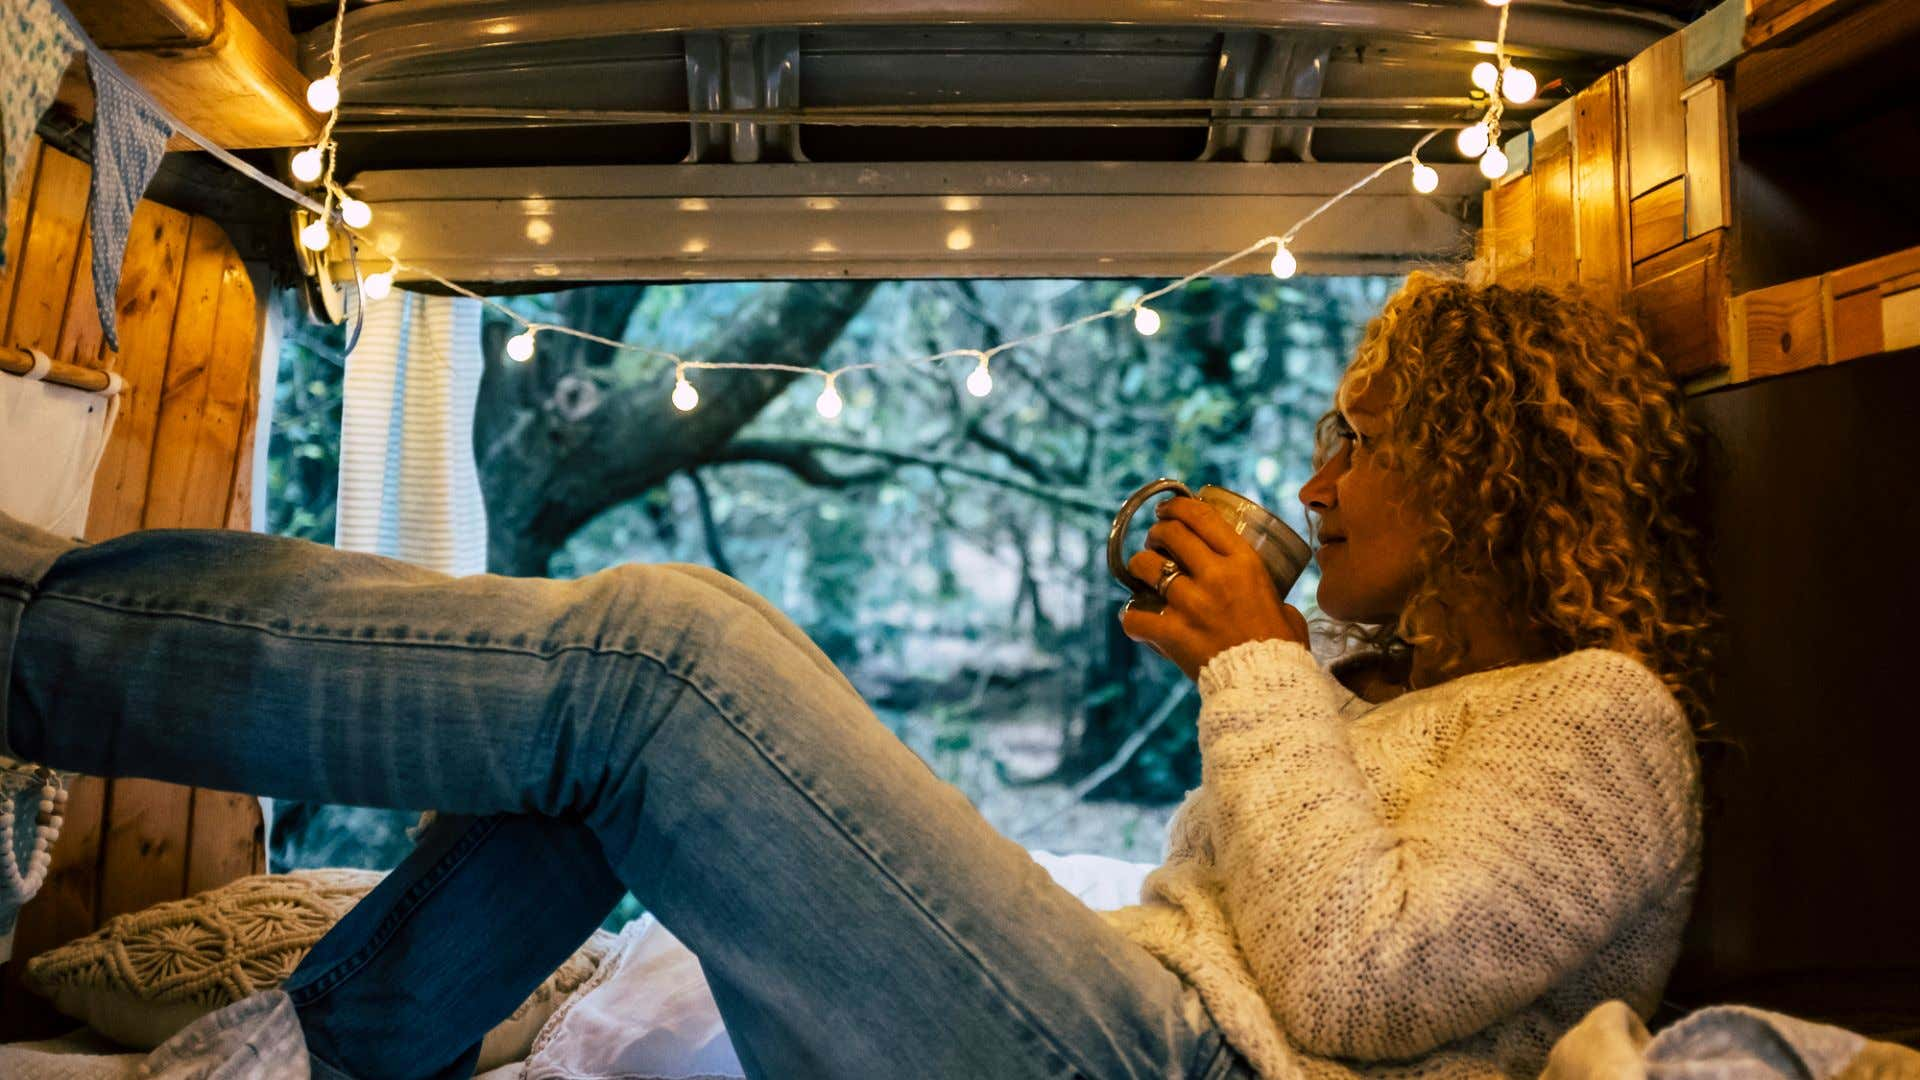 A woman enjoying some coffee in the morning from her van.